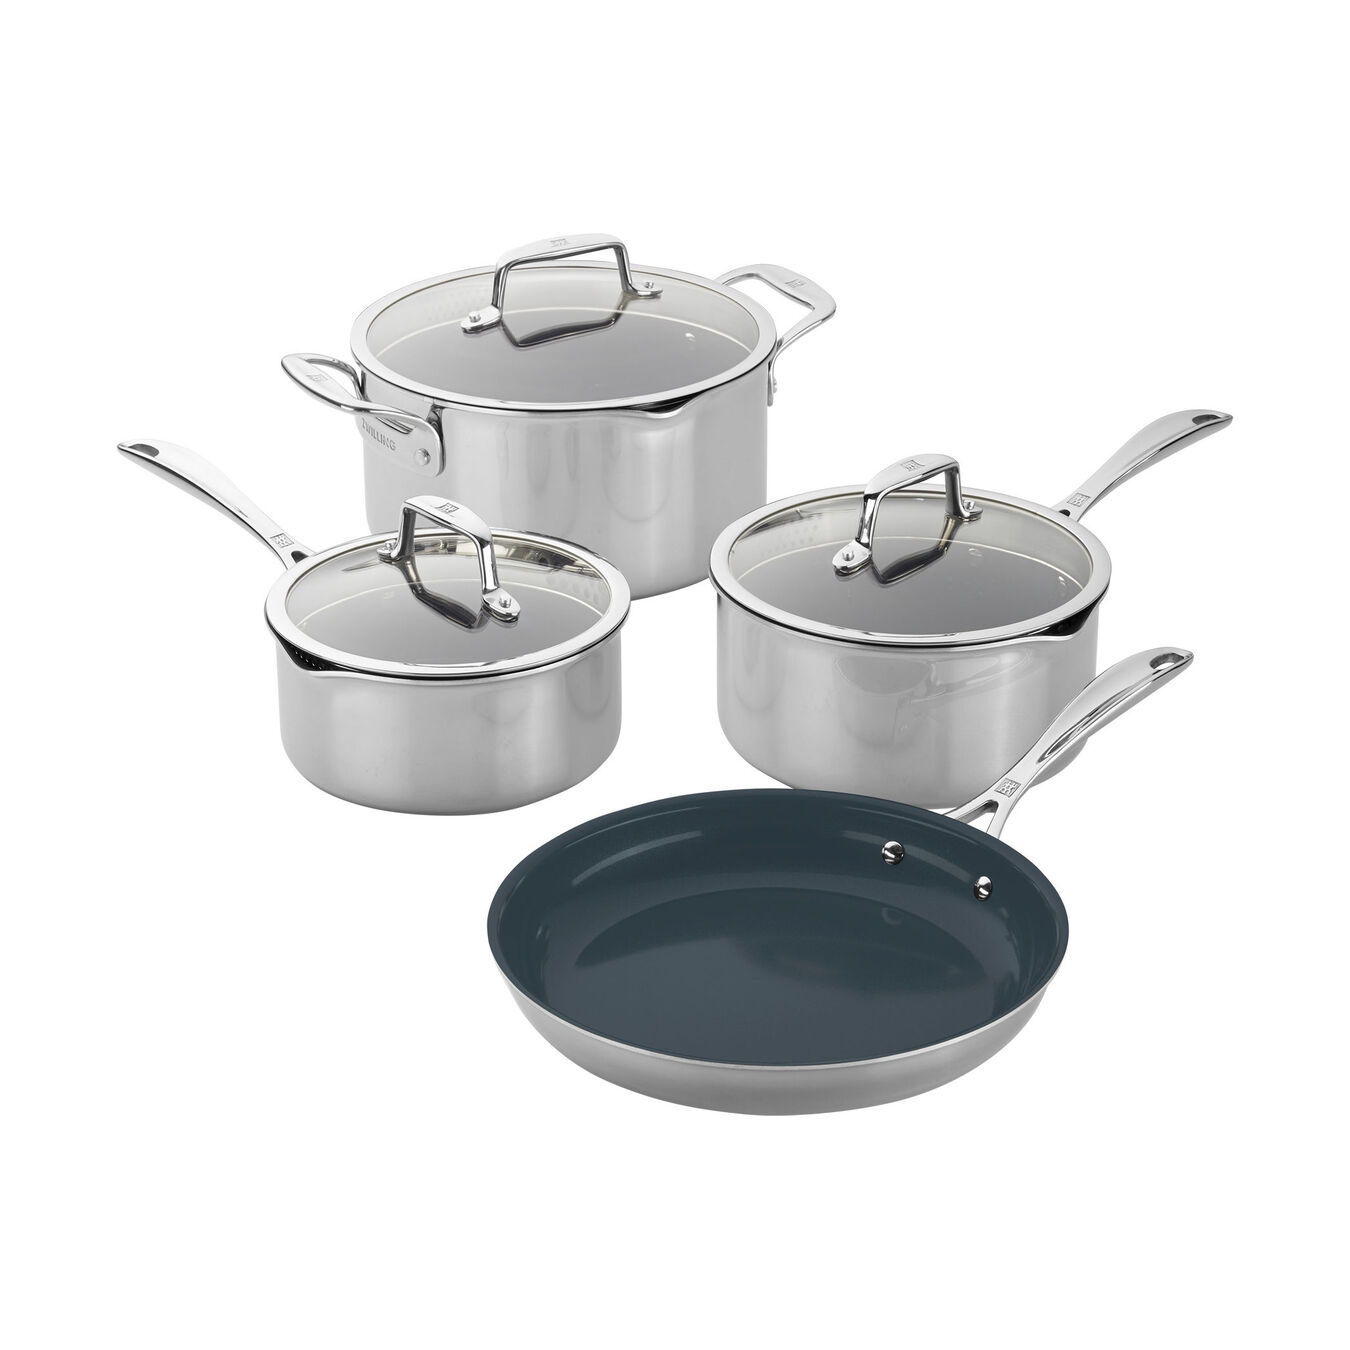 7-pc, 18/10 Stainless Steel, 18/10 Stainless Steel, Non-stick, Pots and pans set,,large 1